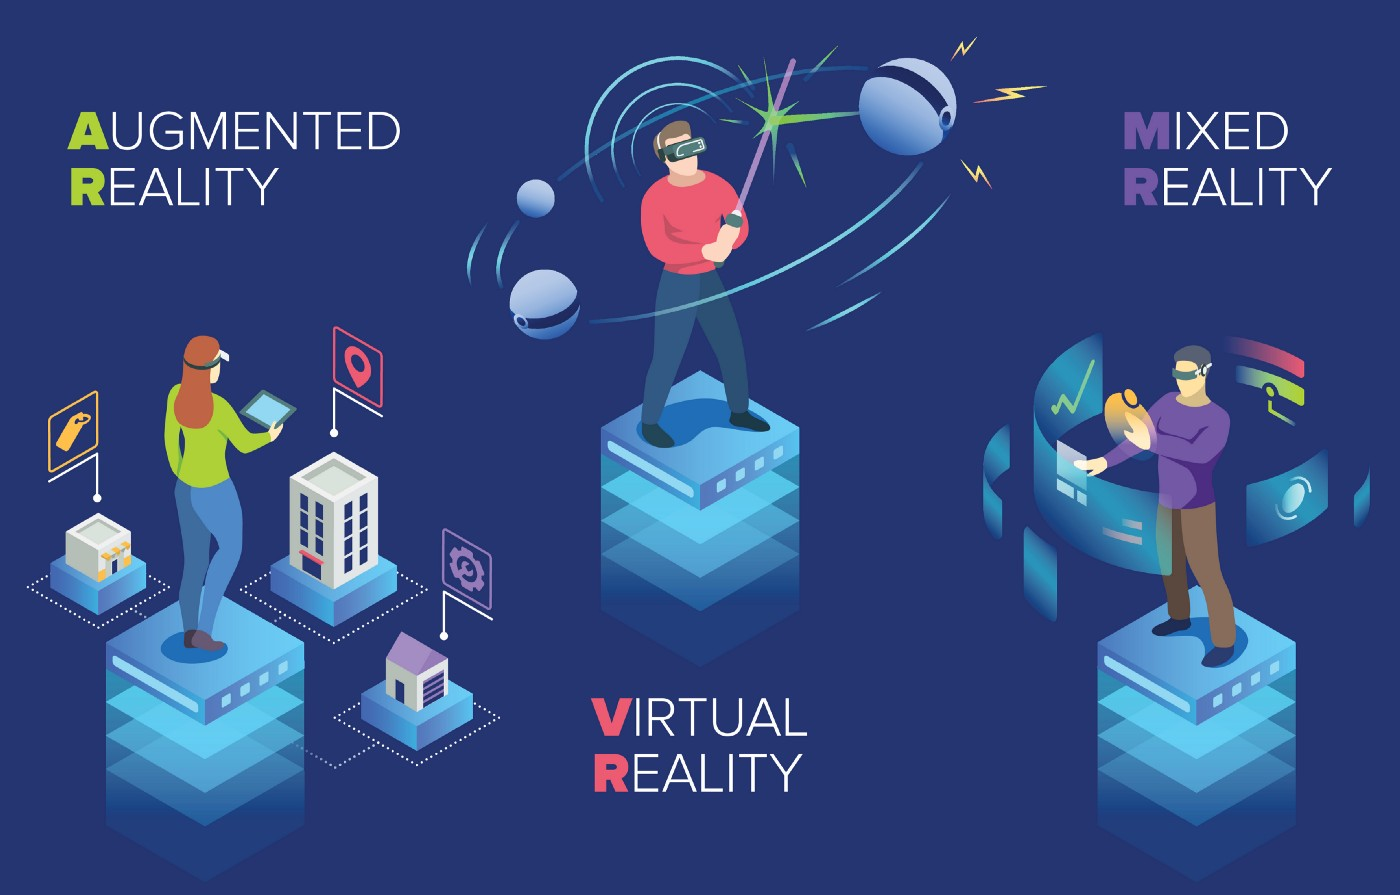 An illustration that showcases an example of augmented reality, virtual reality, and mixed reality.